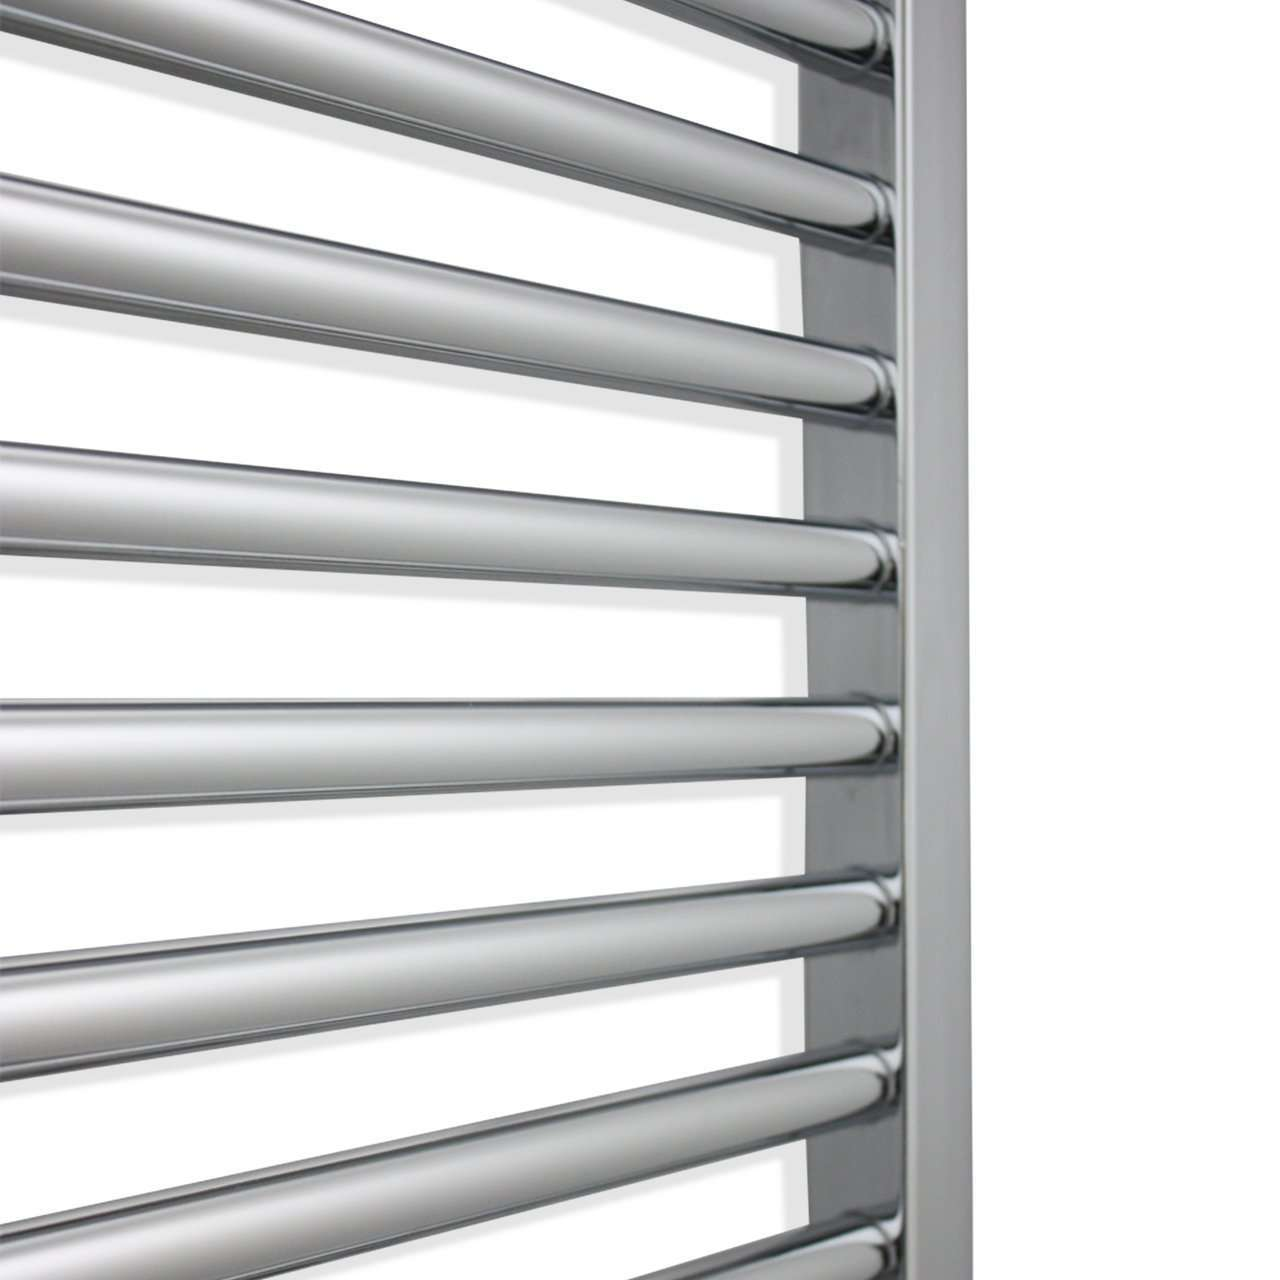 700mm Wide 400mm High Flat Chrome Heated Towel Rail Radiator HTR